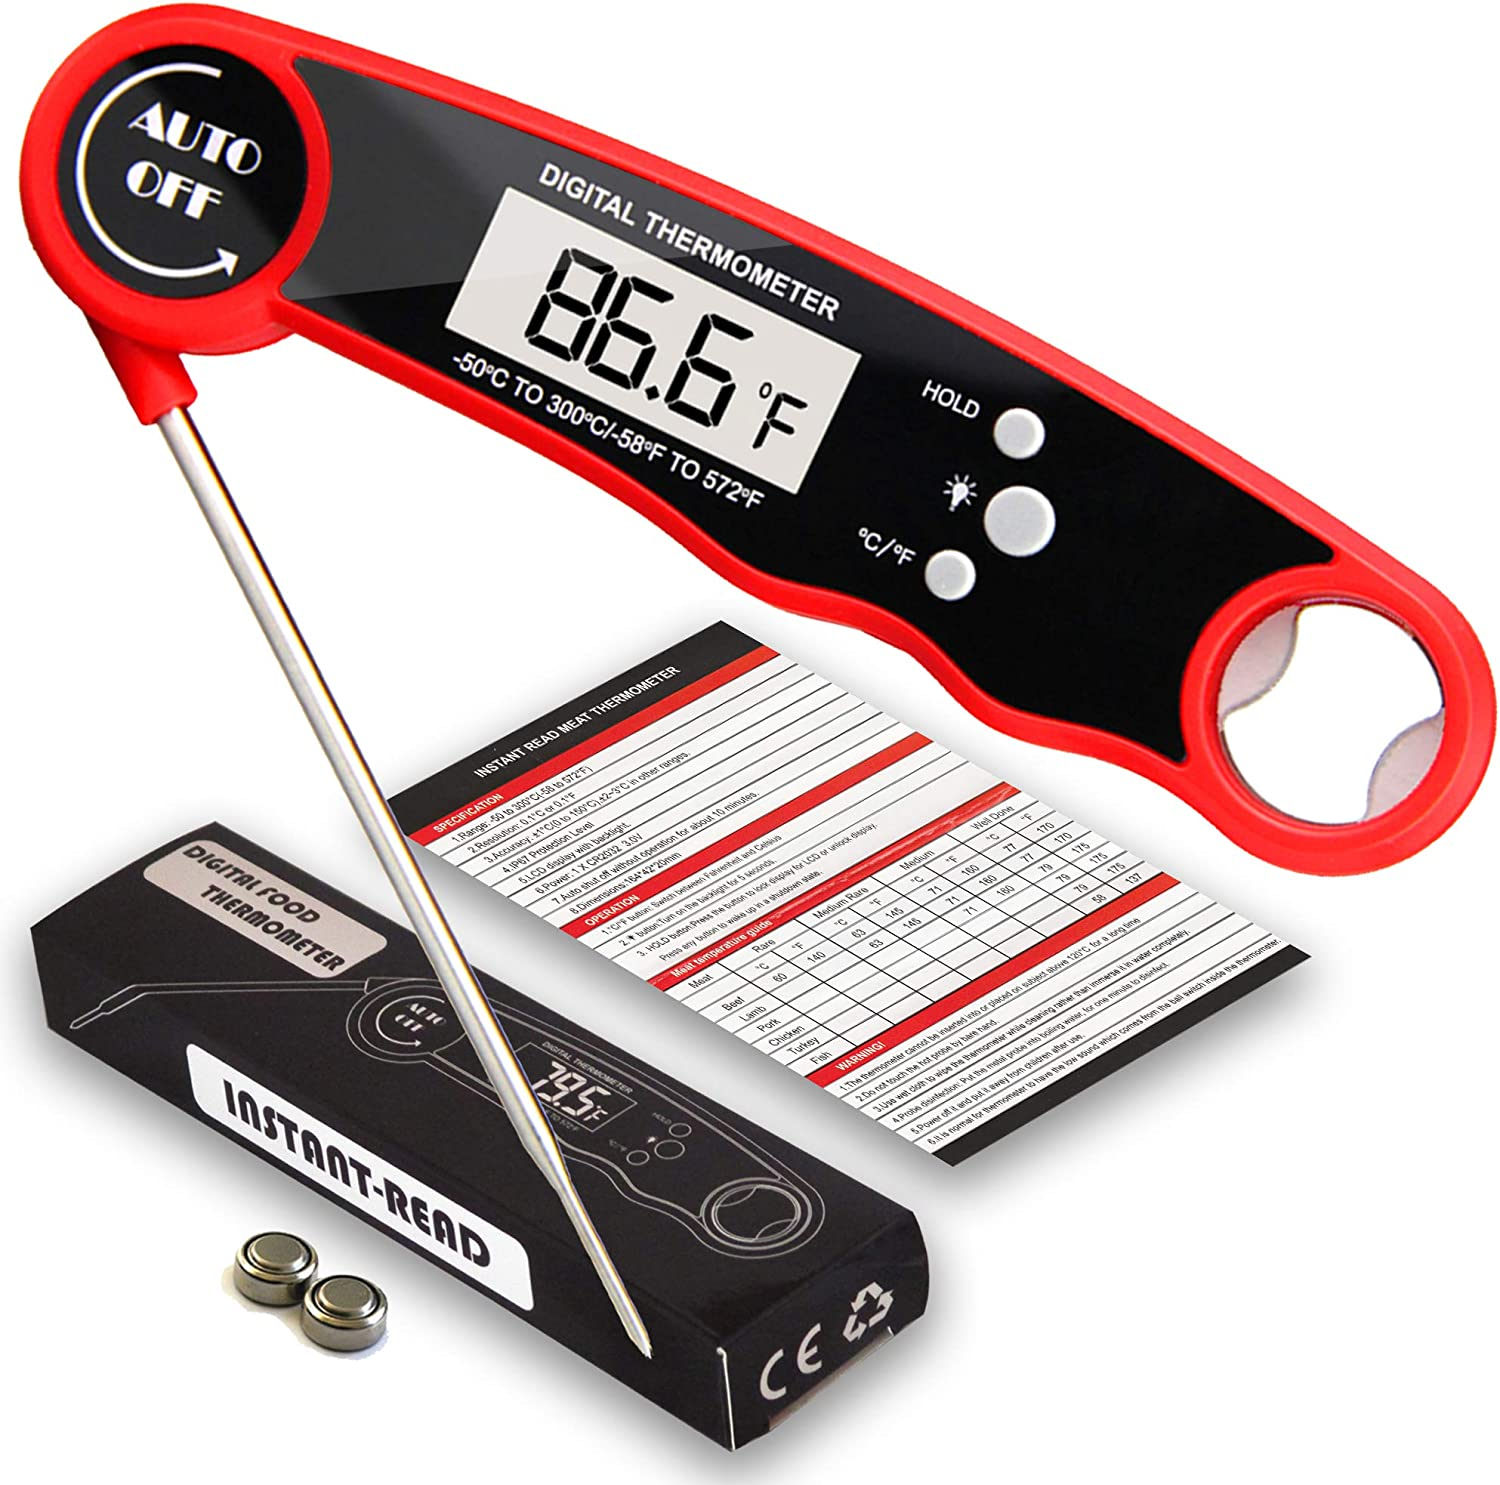 Instant Read Digital Meat Food Thermometer Waterproof & Magnetic | Bottle Opener & Stainless Steel Probe | Perfect for BBQ Outdoor Cooking Smoker & Grill | Candy Oven Baking Deep Fry by Kitchen Crafty